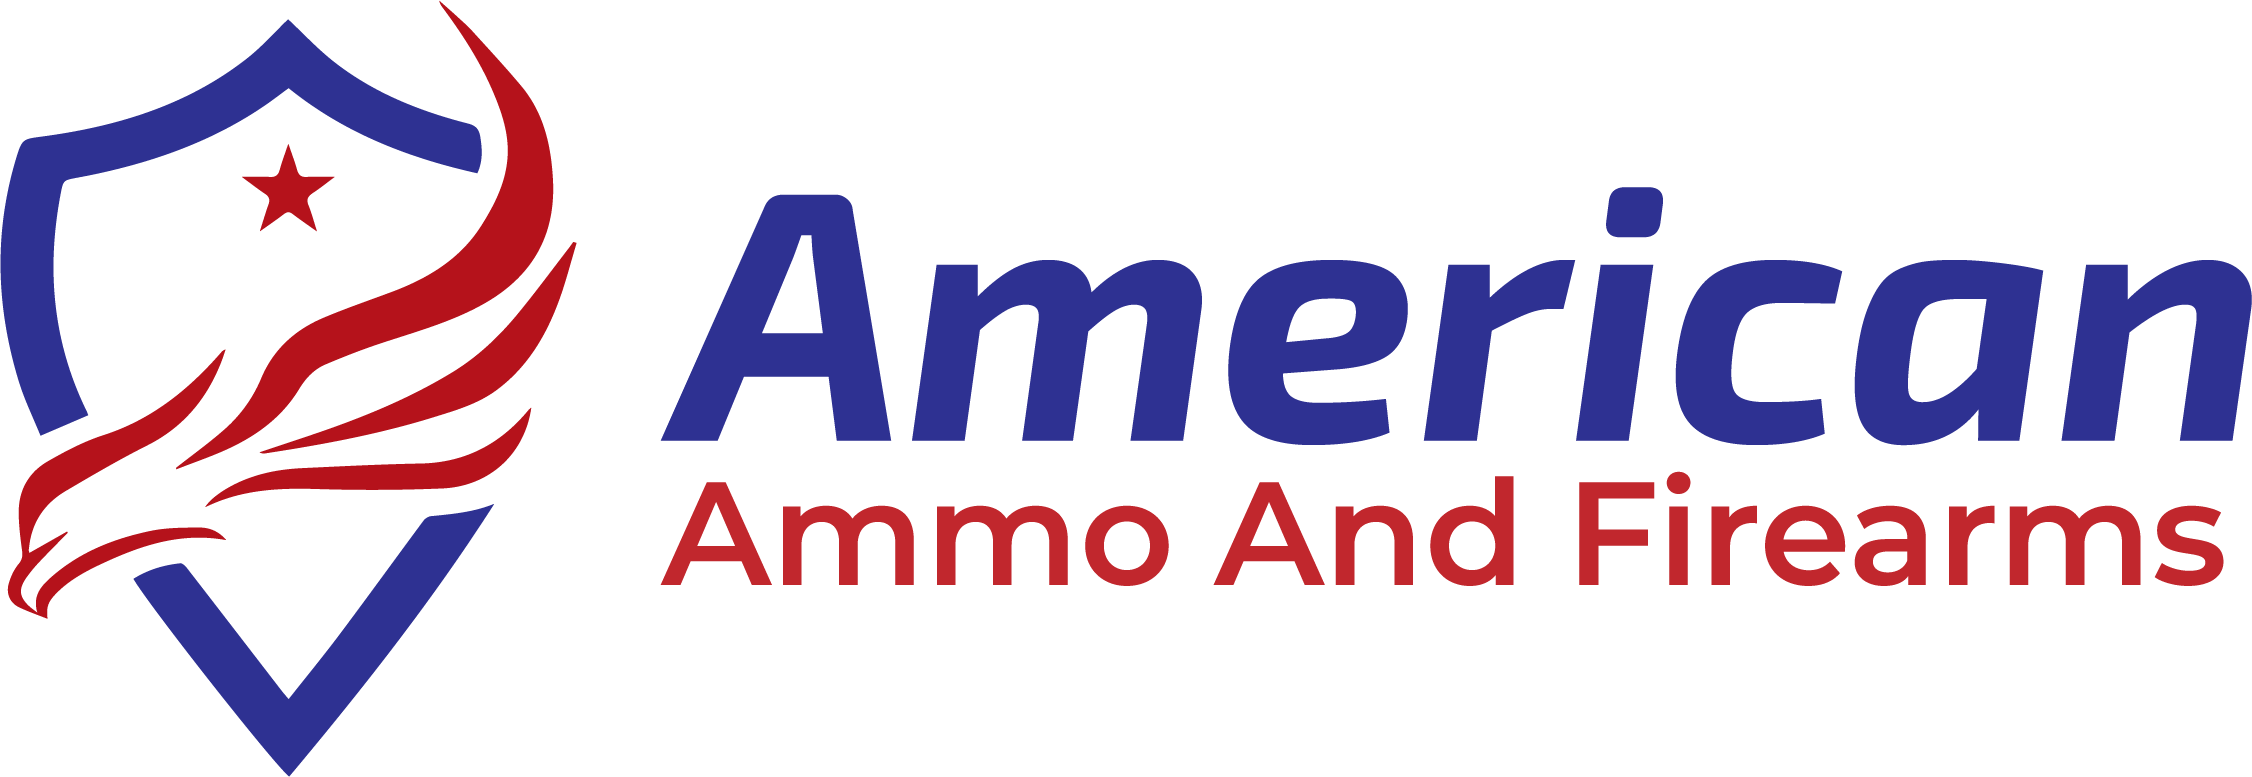 American Ammo And Firearms